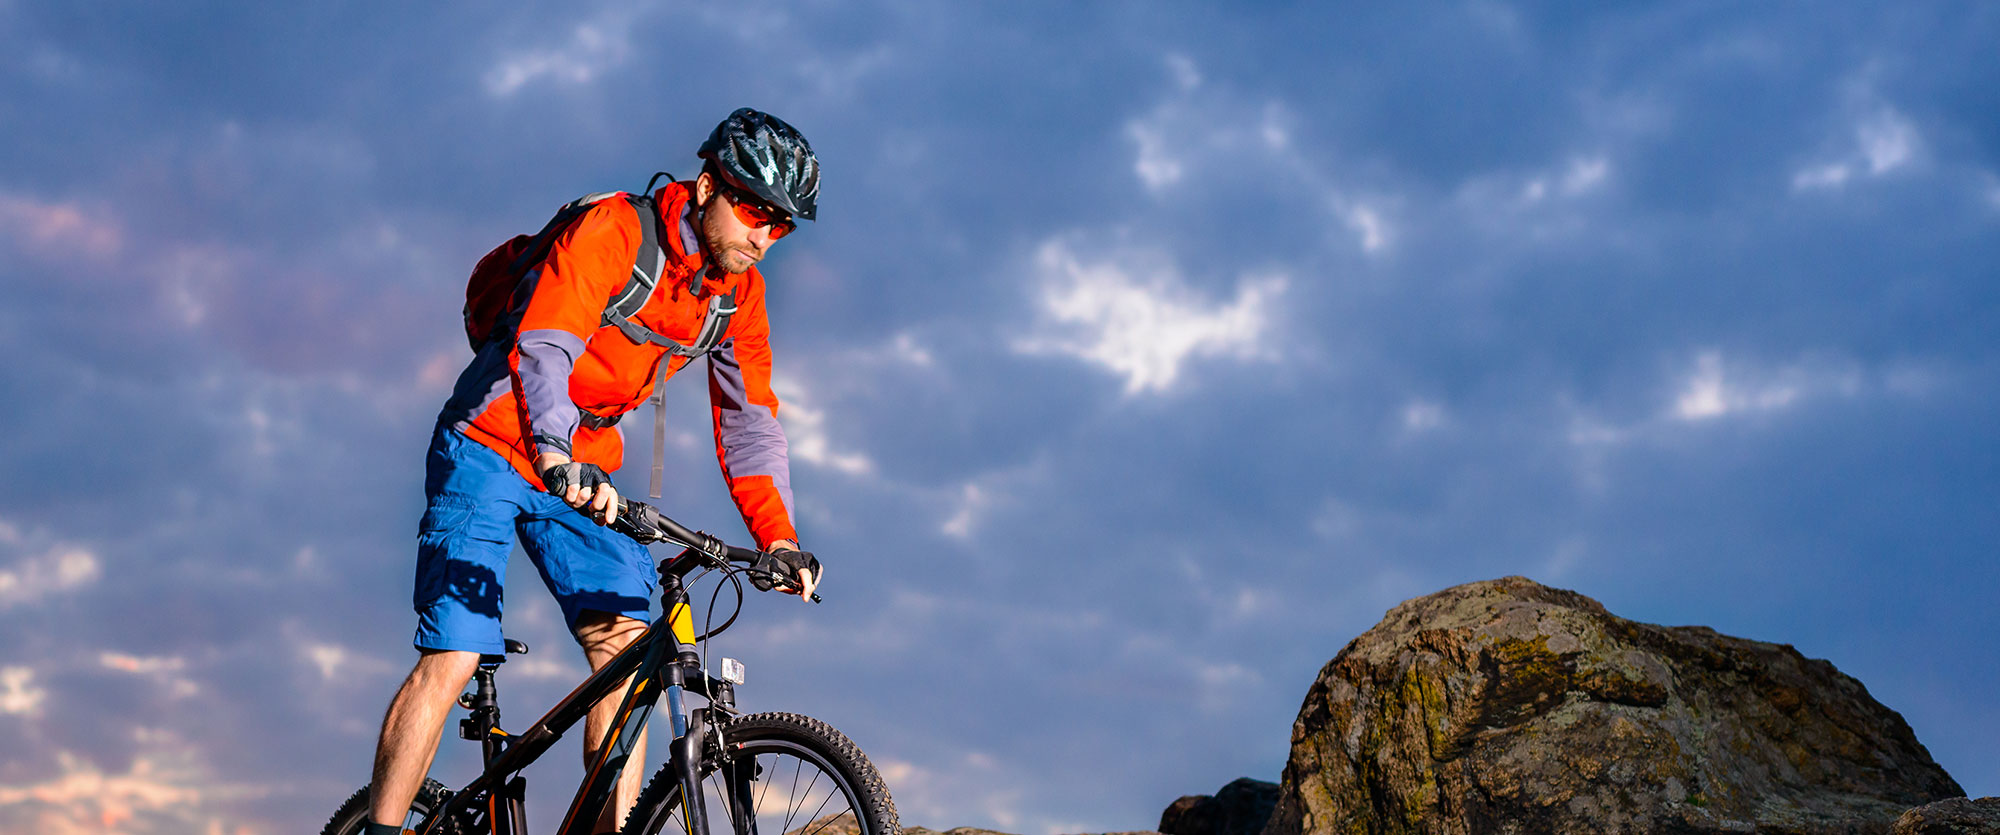 Man on a mountain bike trail